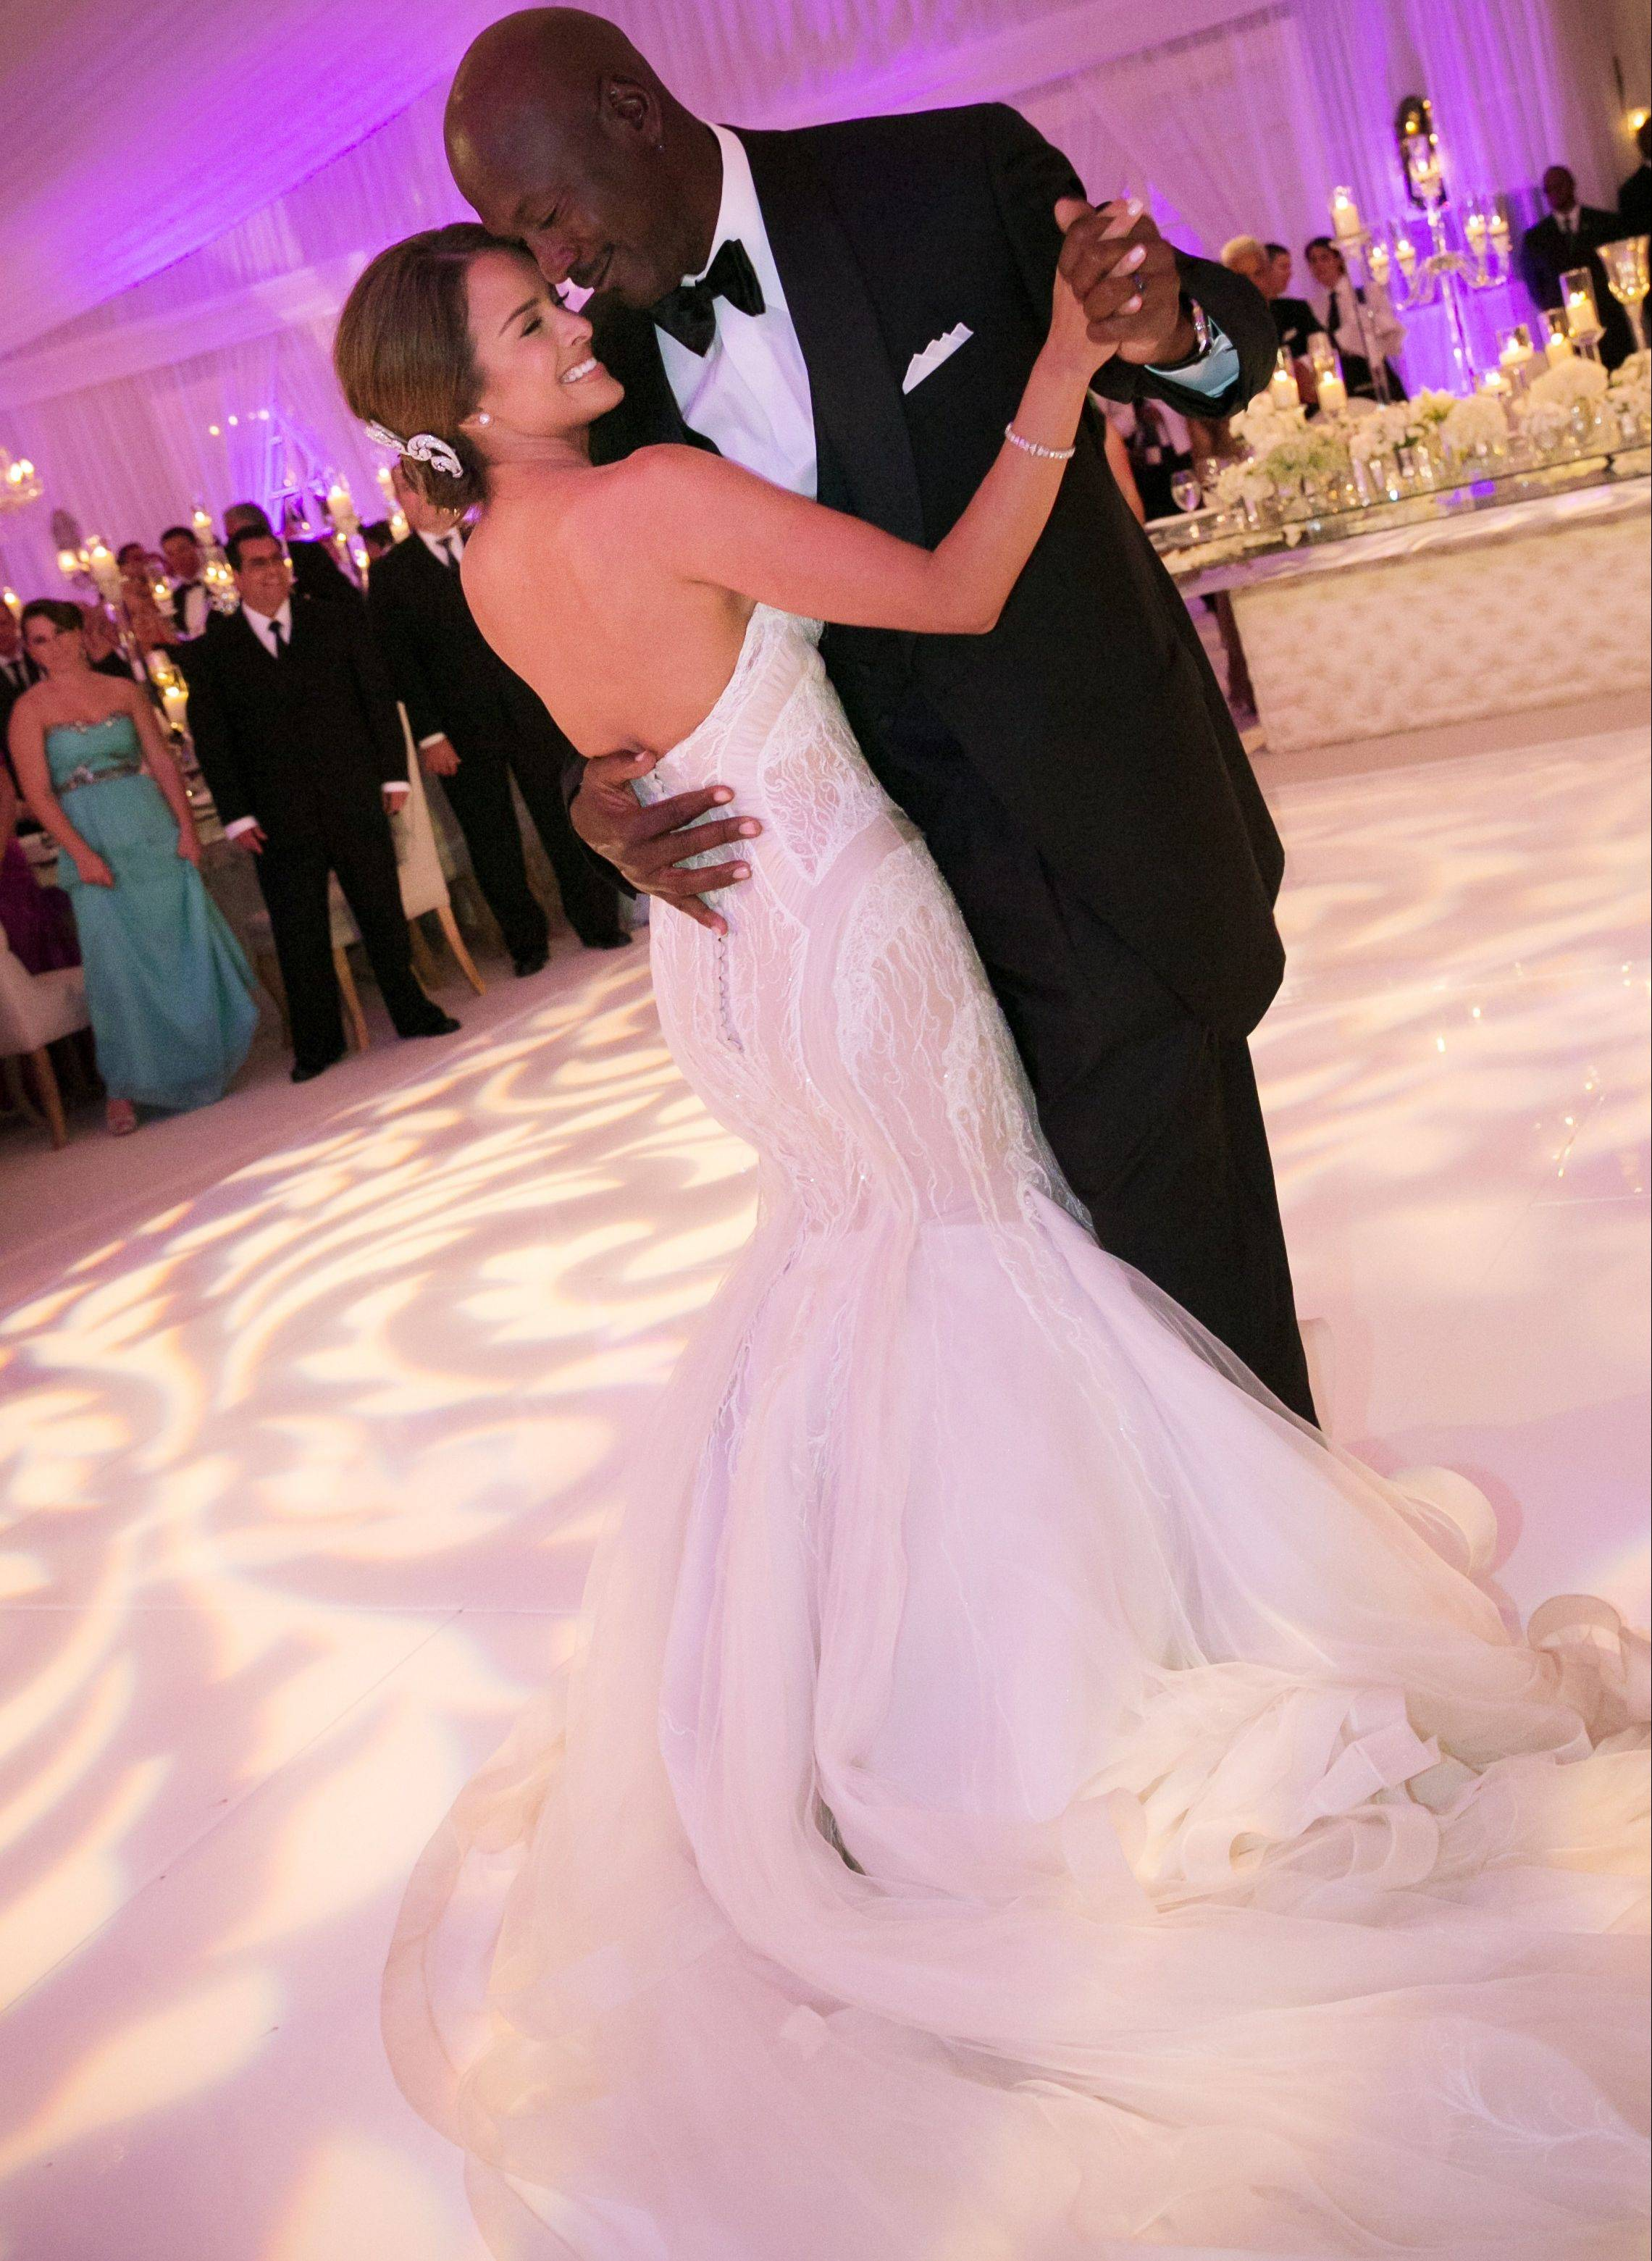 In this photo provided by JUMP.DC, Charlotte Bobcats owner Michael Jordan dances with his bride Yvette Prieto during their wedding reception Saturday night at the Bear's Club in Jupiter, Fla. More than 300 guests were in attendance, including Tiger Woods, Patrick Ewing and Ahmad Rashad, Jordan's manager Estee Portnoy told The Associated Press on Sunday.